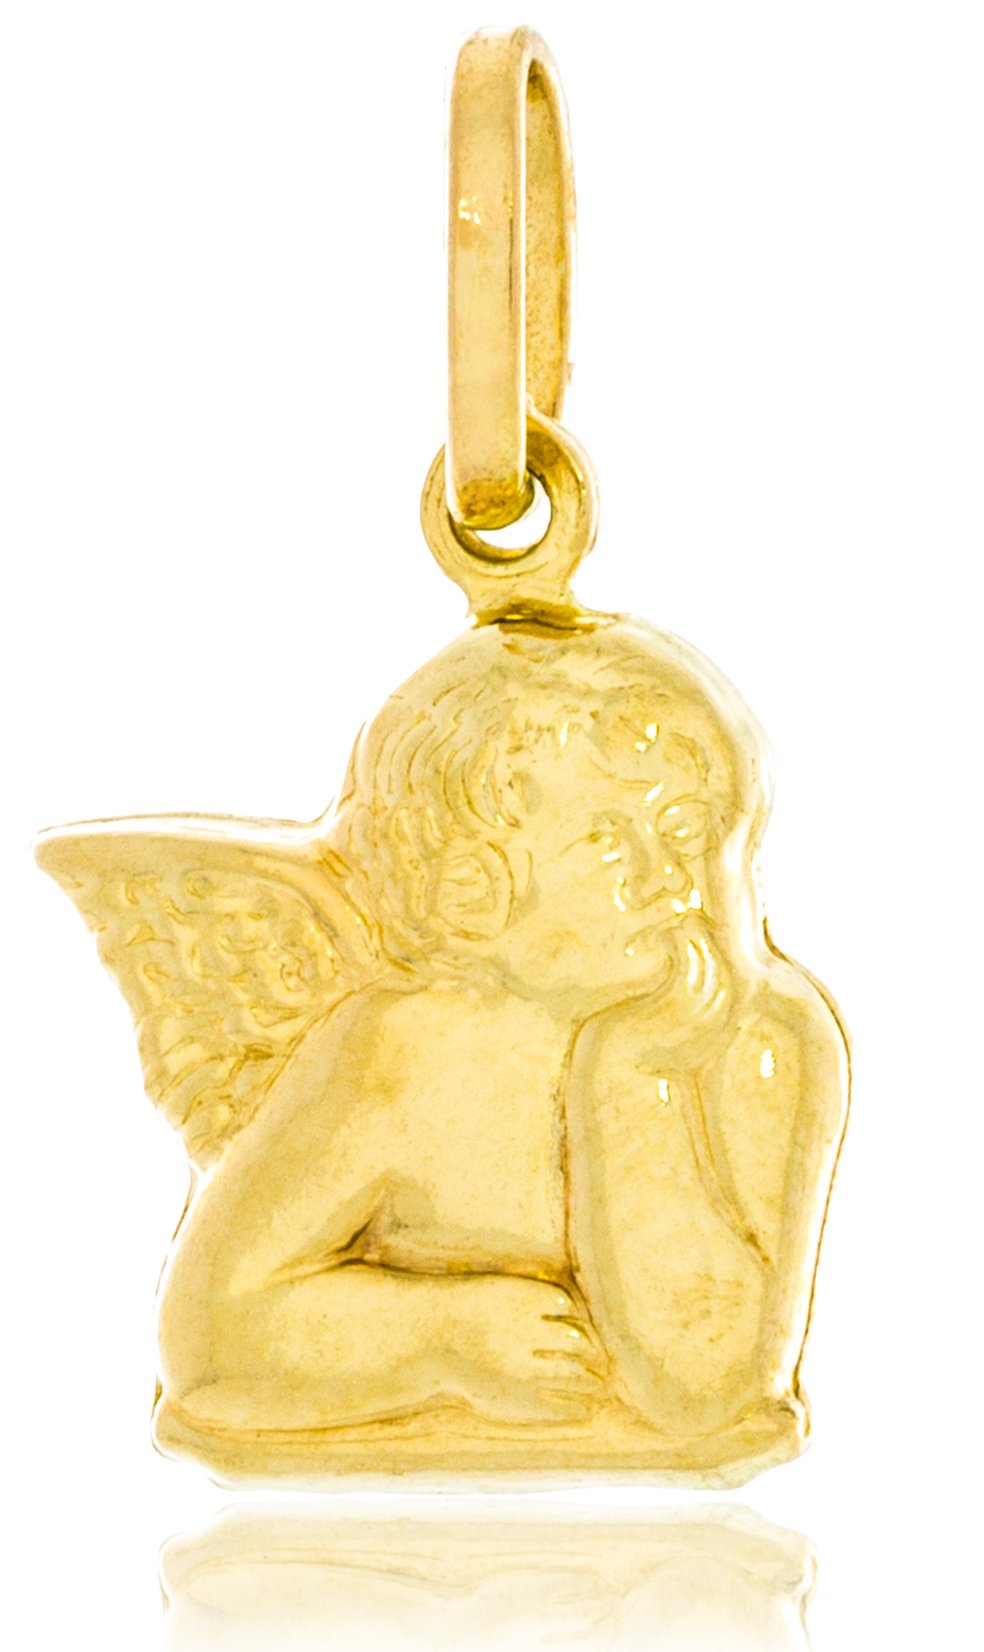 Solid Gold Angel Charm of Raphael Angel Cherub (Hollow) 14K Yellow Gold 15.1mm Tall by 12.7mm Wide | 1.2g